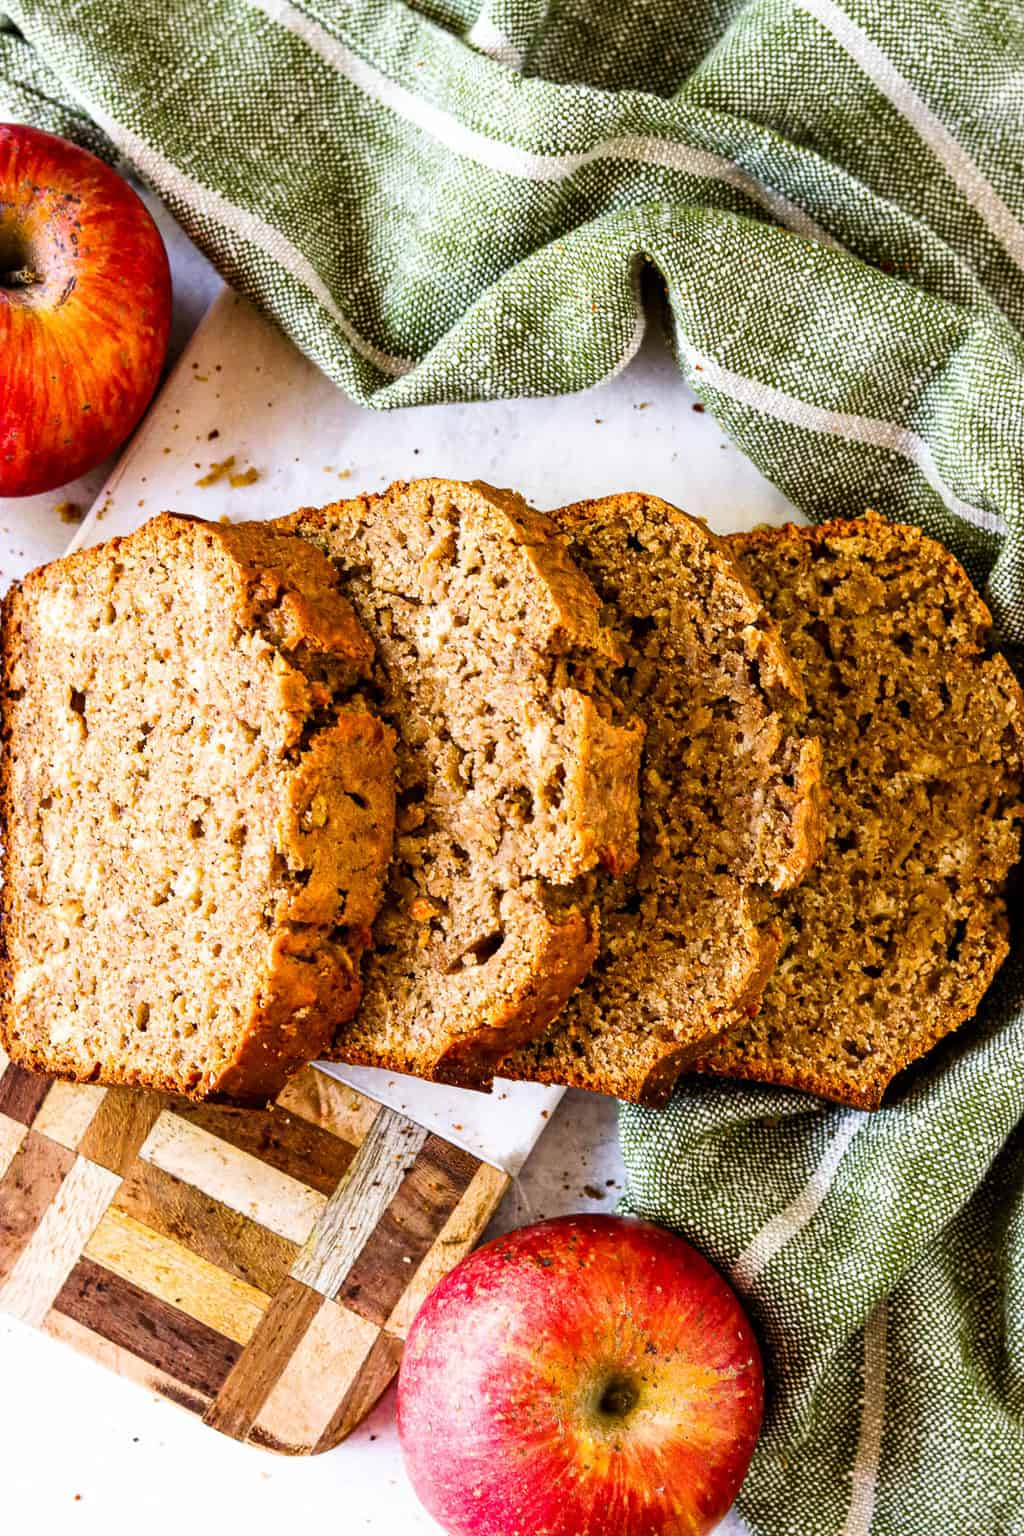 A cutting board with slices of healthy cinnamon apple bread resting on top